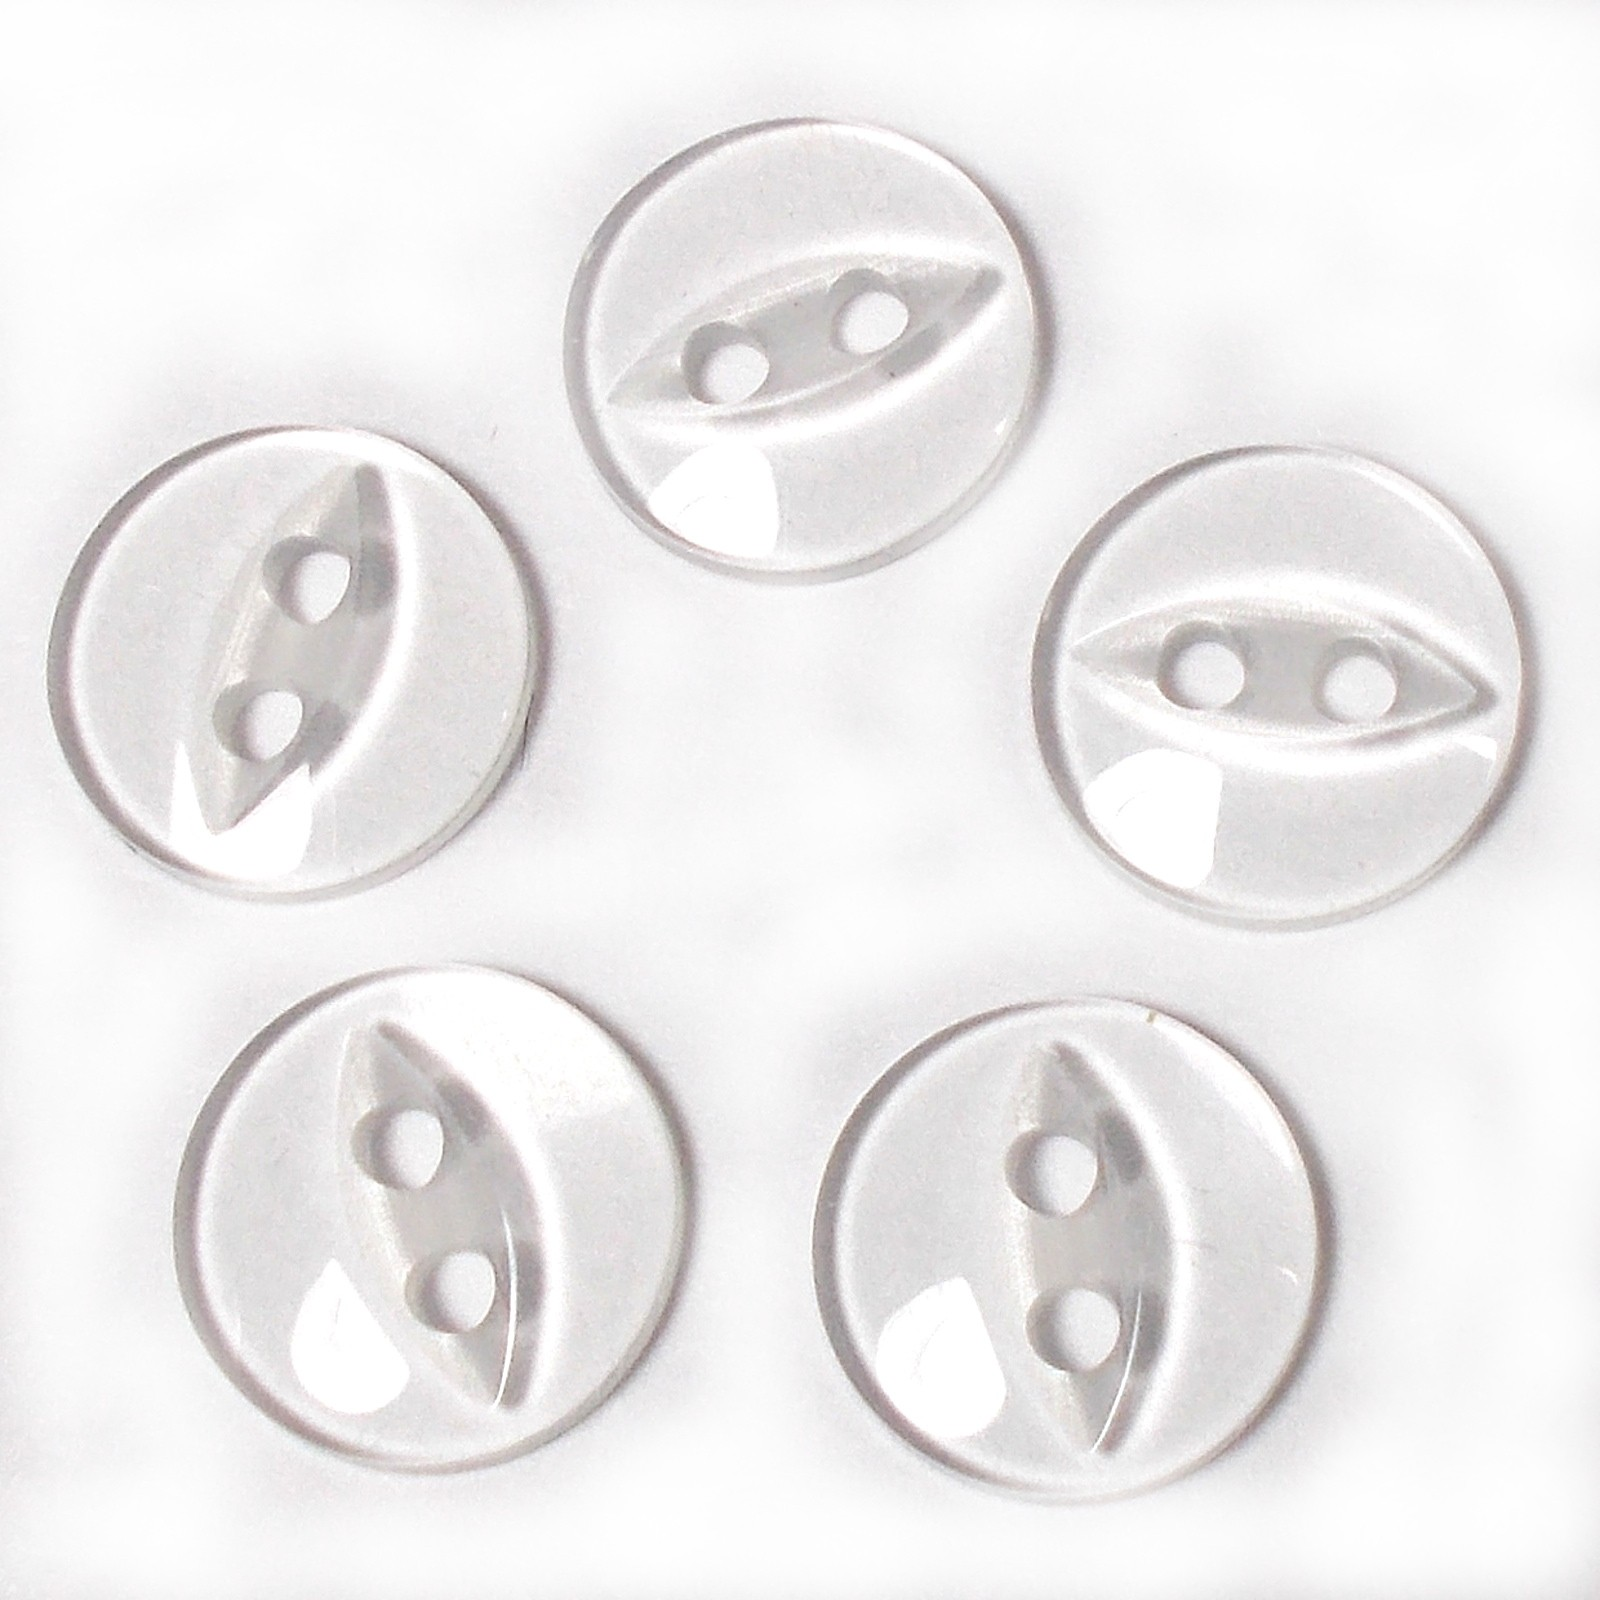 Fisheye Basic Buttons 11mm Clear Pack of 5